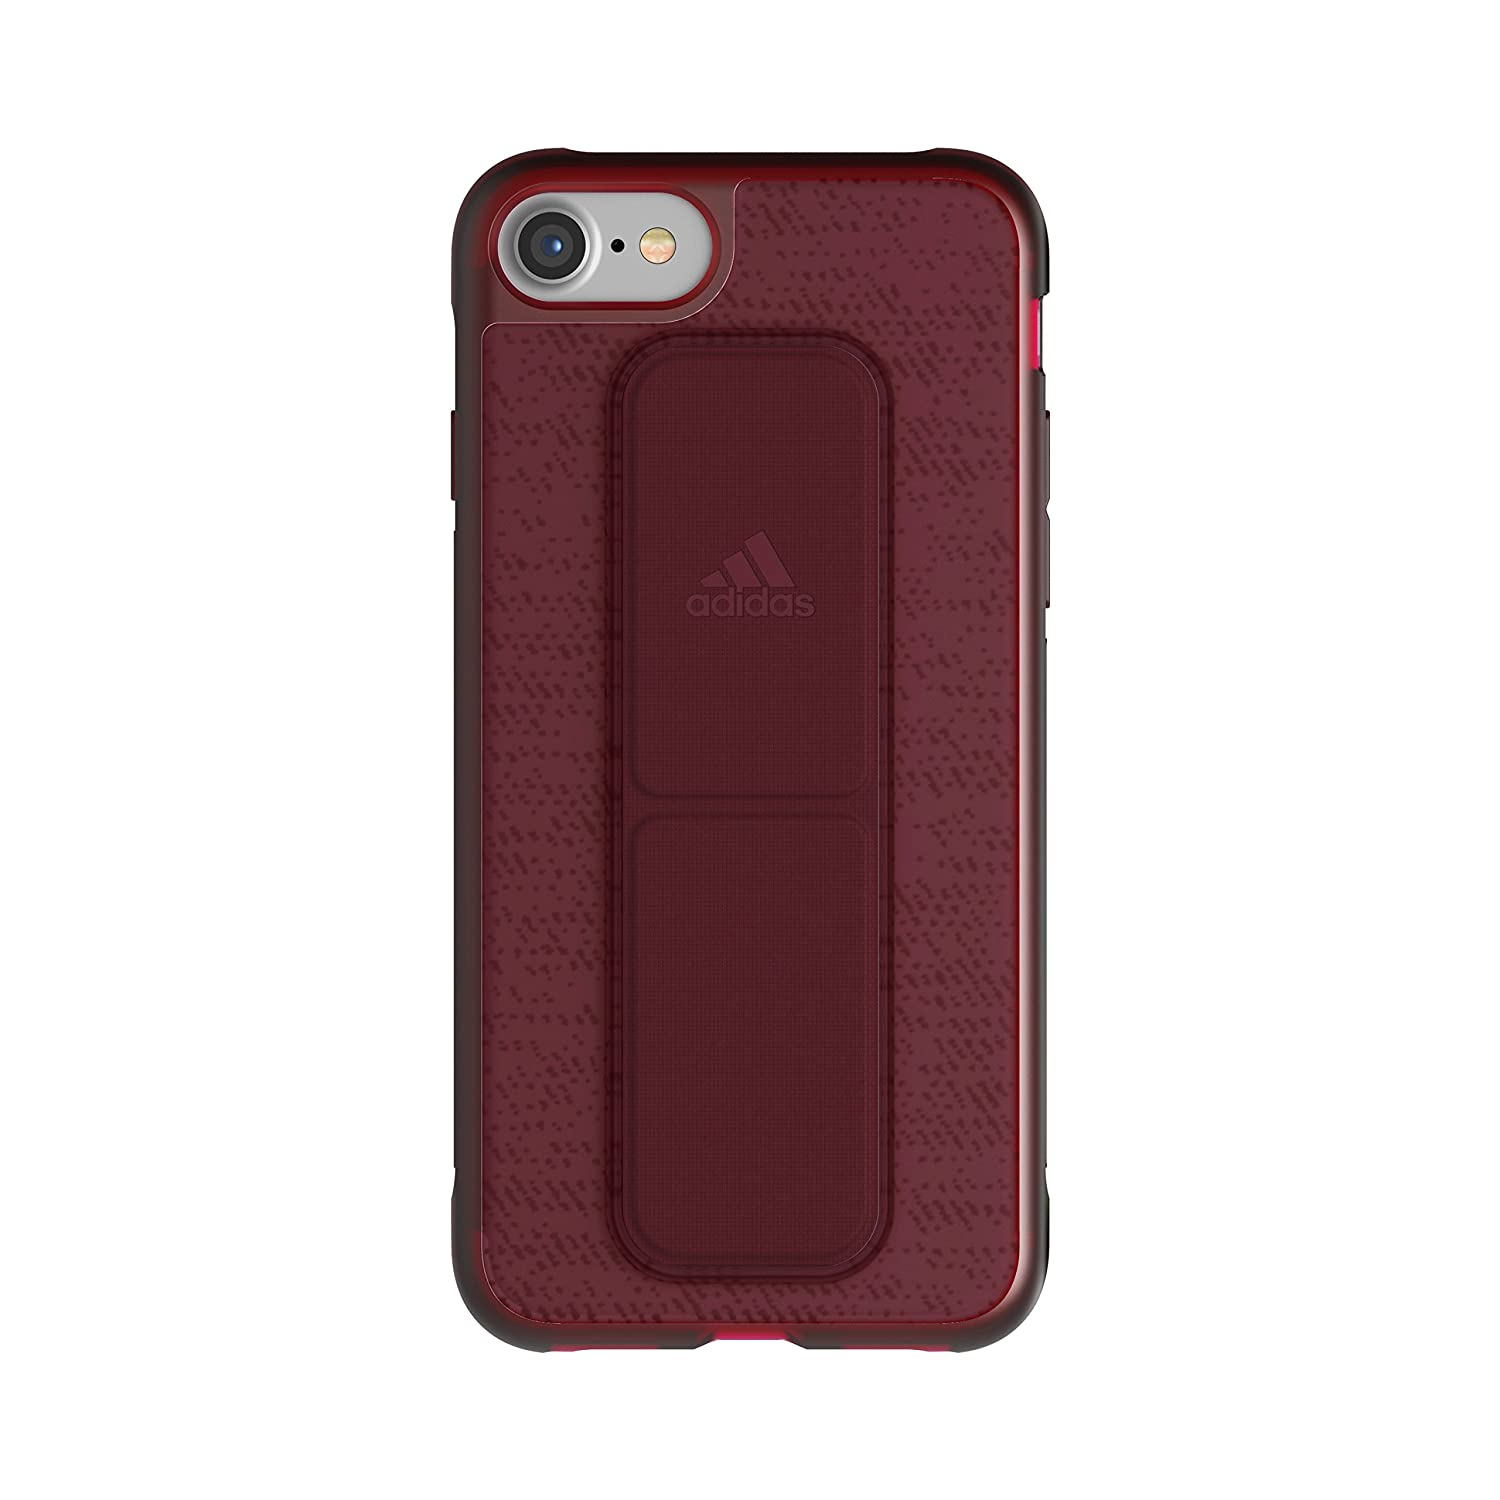 adidas SP Grip - Carcasa para iPhone 6/6S/7/7S: Amazon.es ...